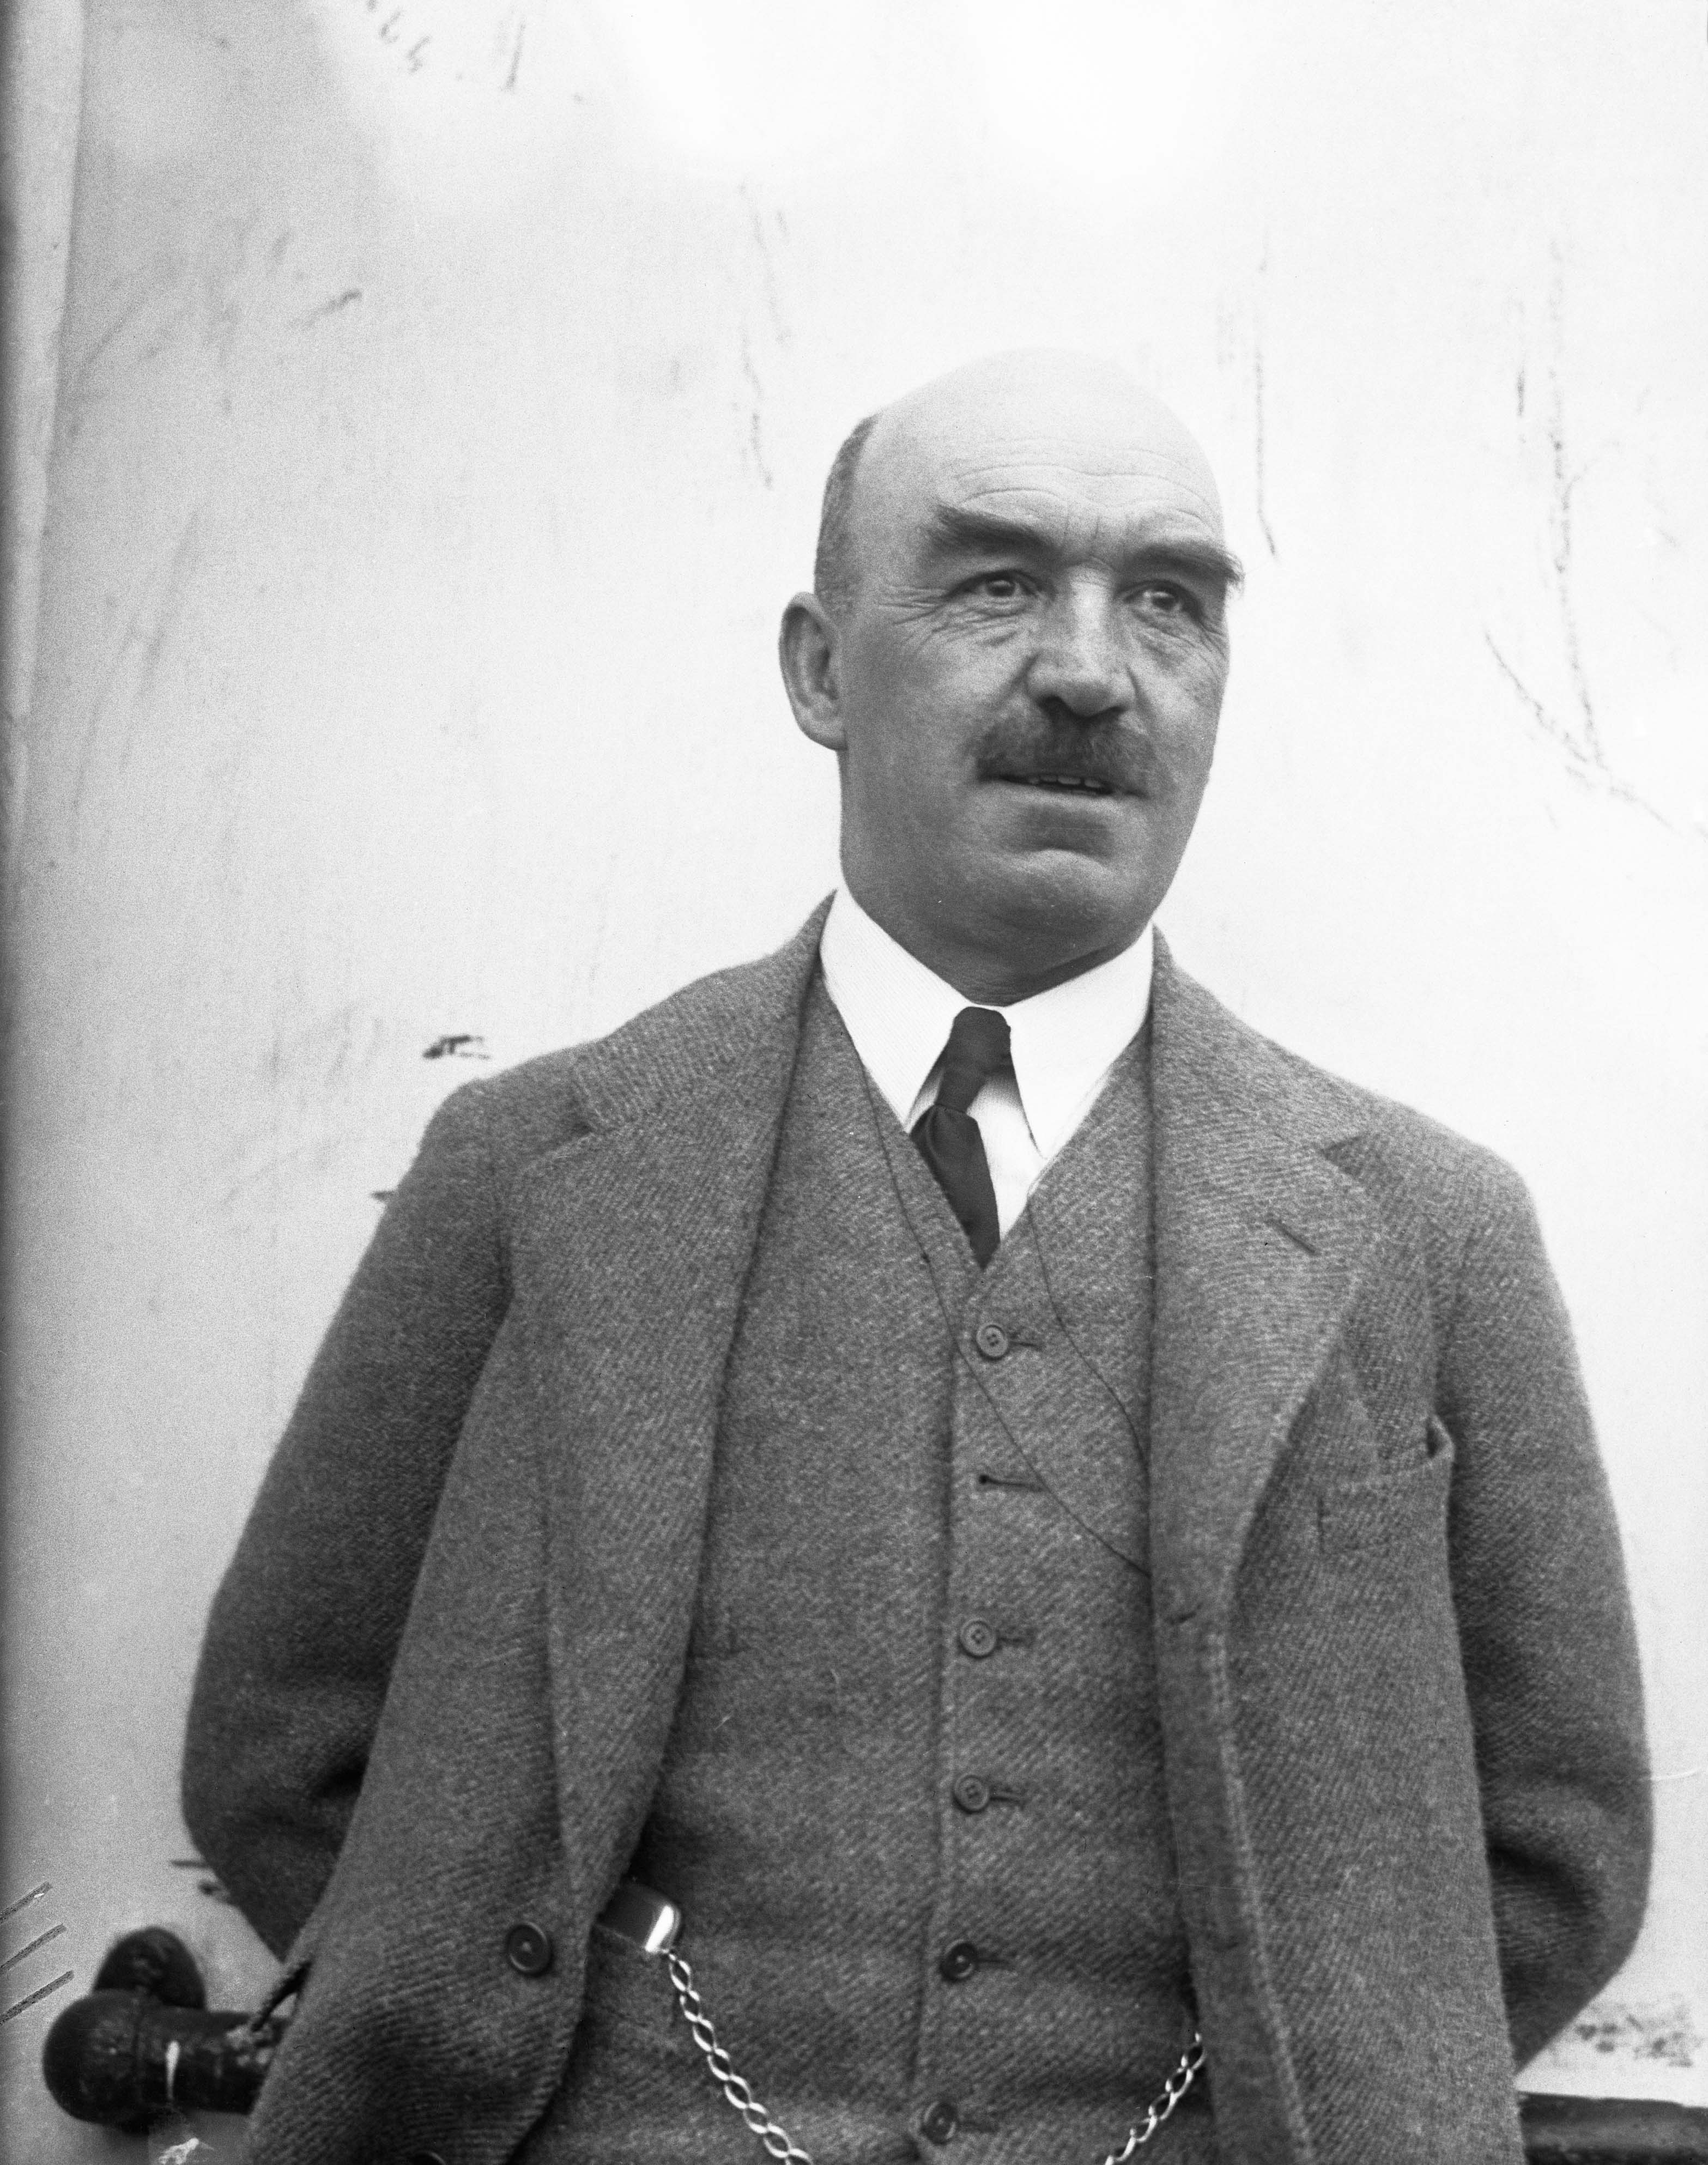 Alister Mackenzie aided in the creation of the course